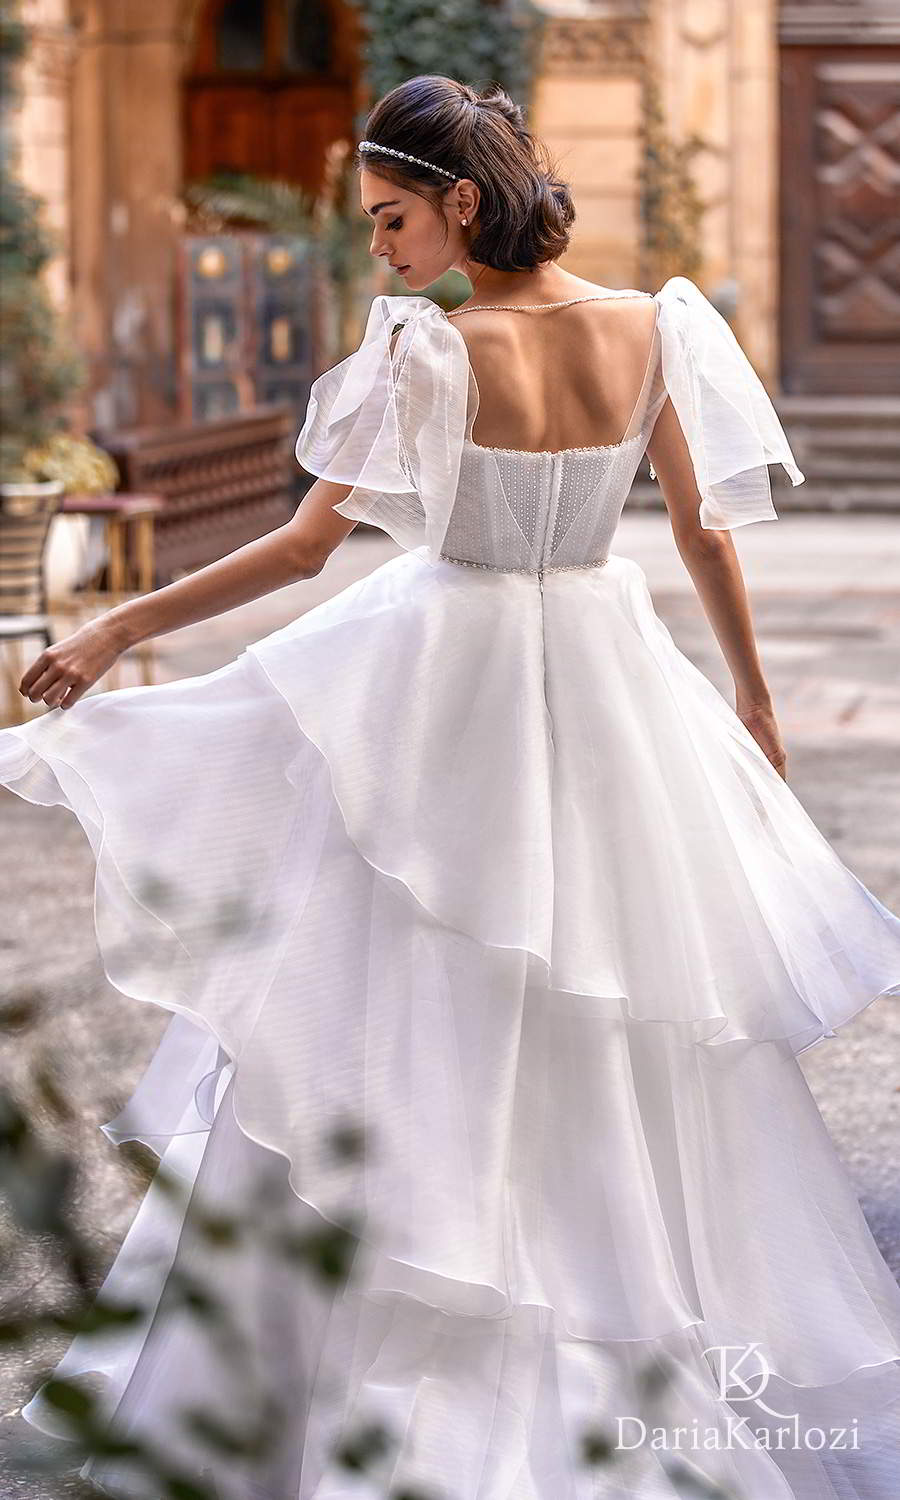 daria karlozi 2021 graceful dream bridal sleeveless flutter sleeves straight across neckline embellished bodice a line ball gown wedding dress chapel train (touch of love) bv